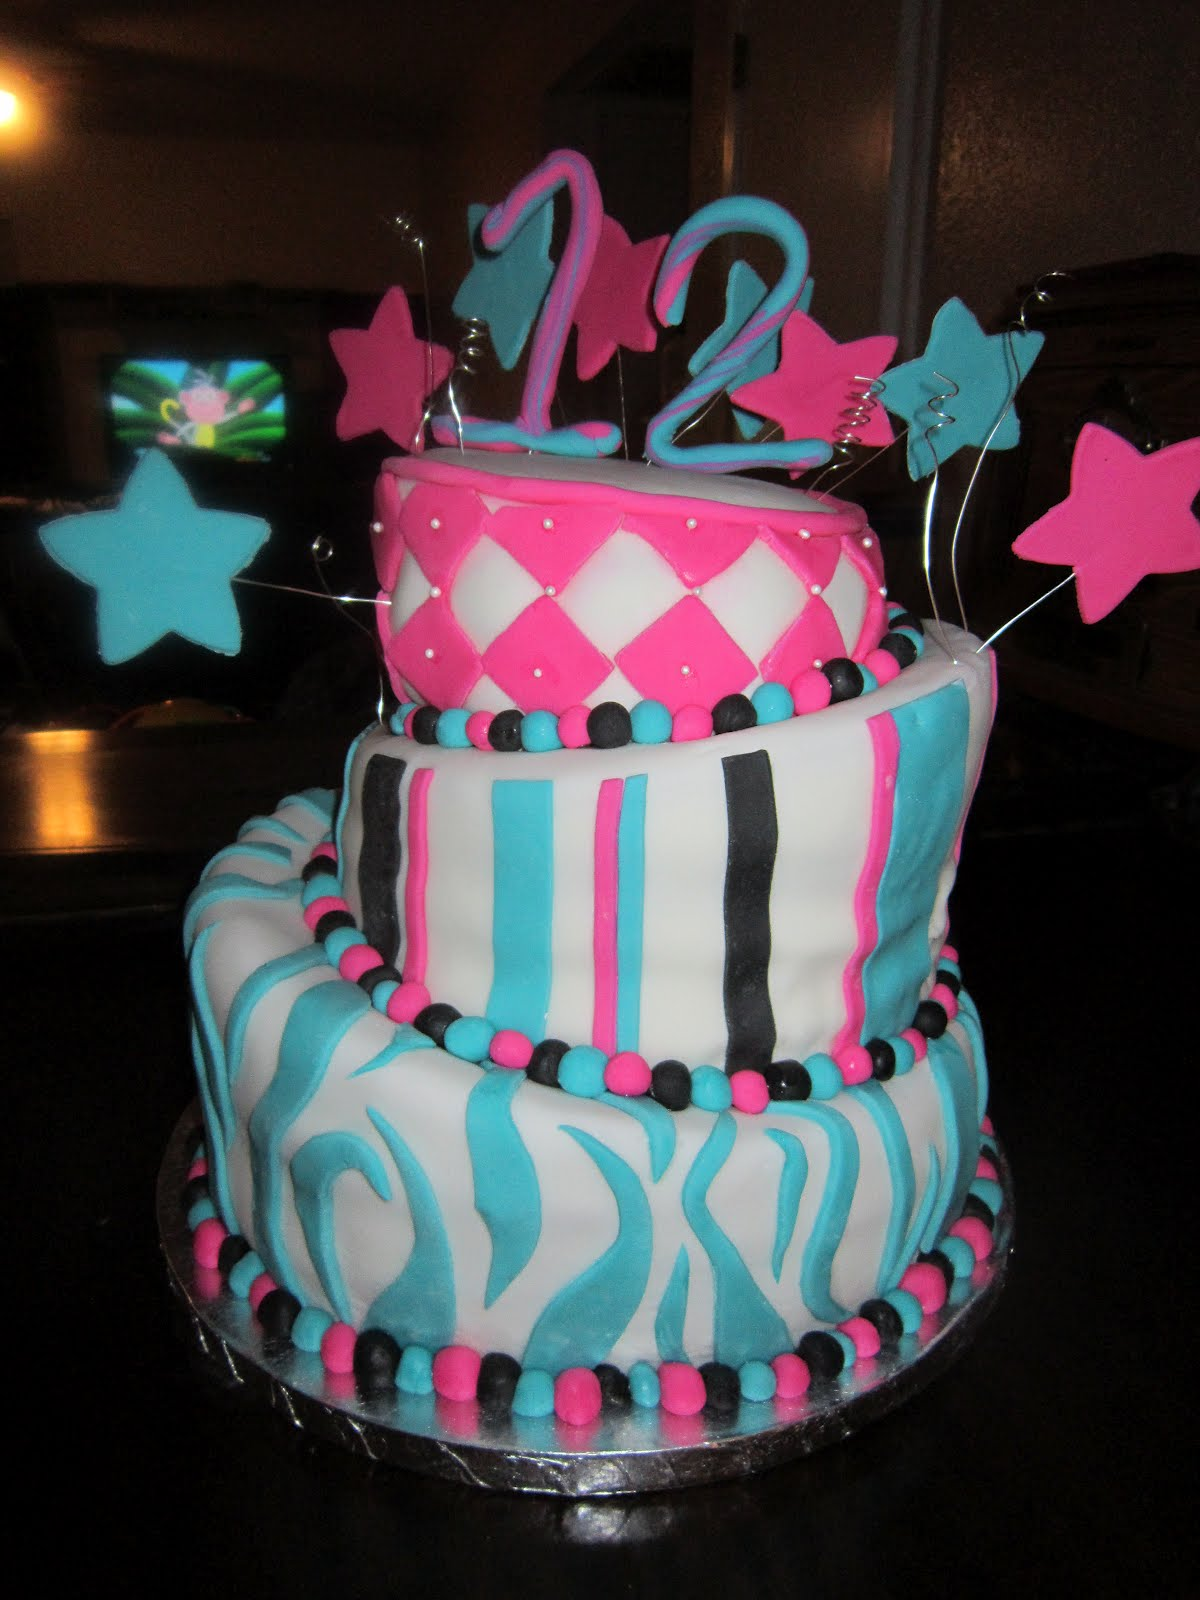 Nickel Anet Cakes The Topsy Turvy 12th Birthday Cake